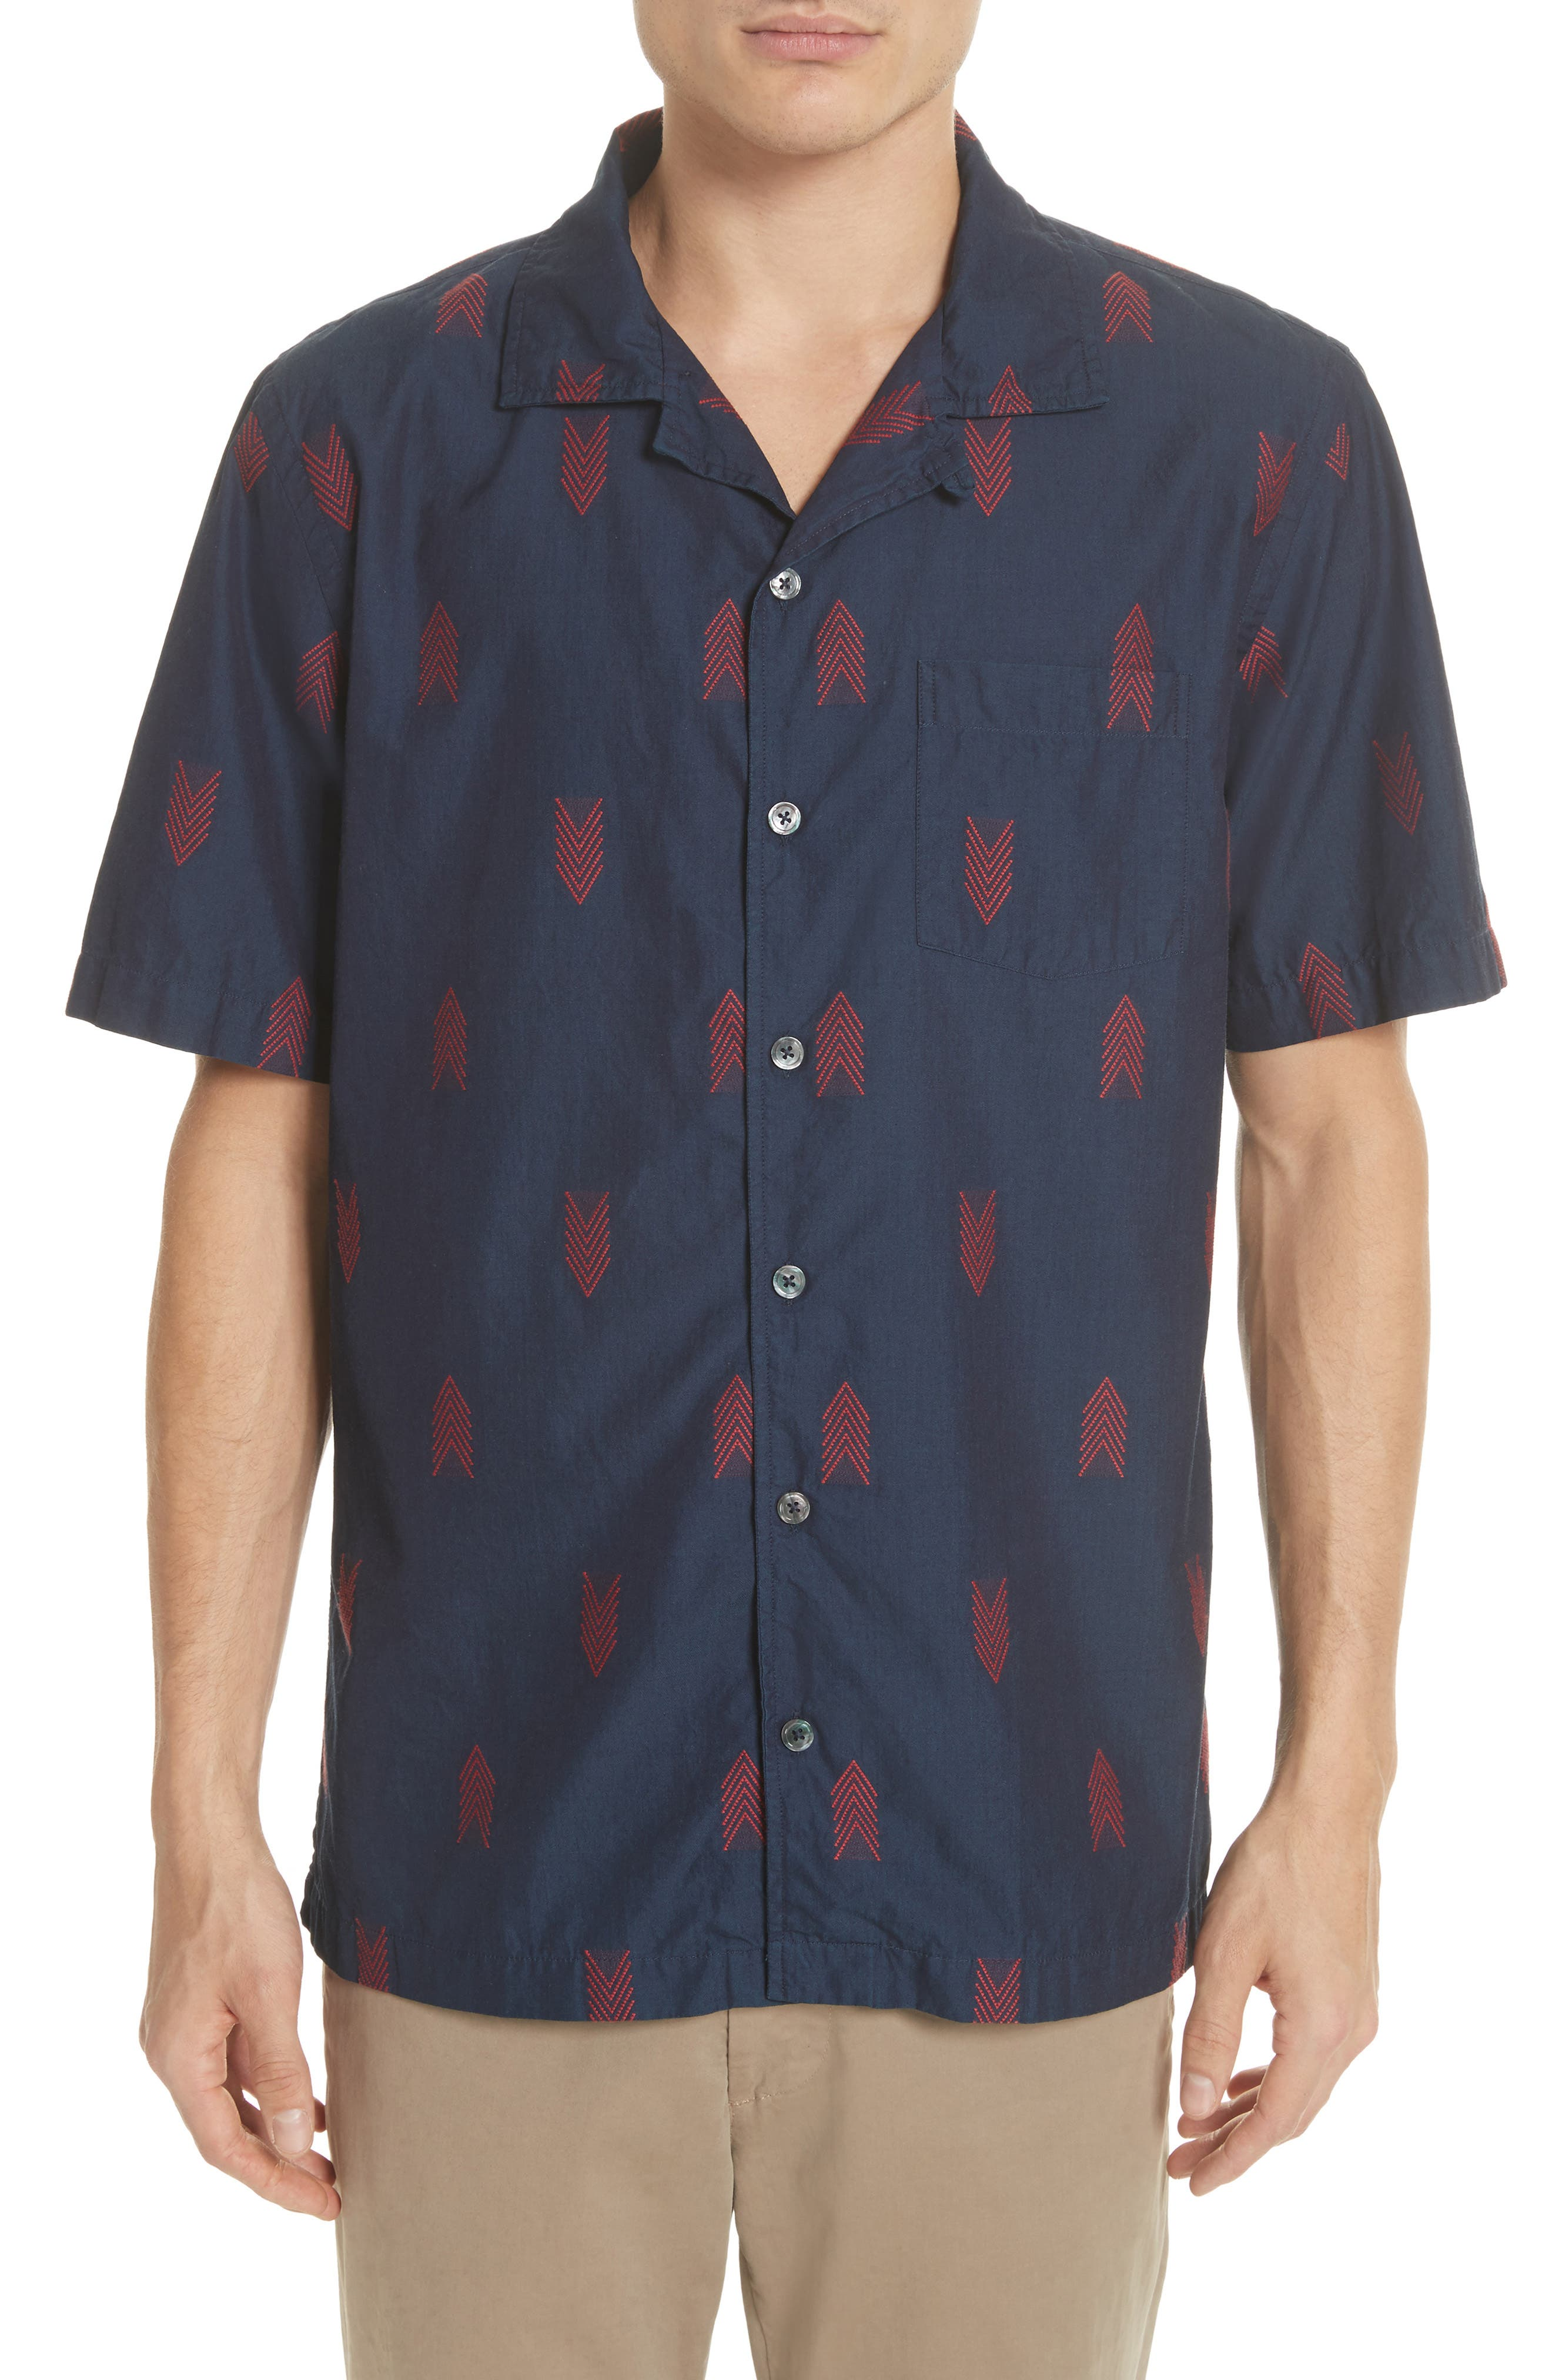 Todd Snyder Short Sleeve Woven Shirt